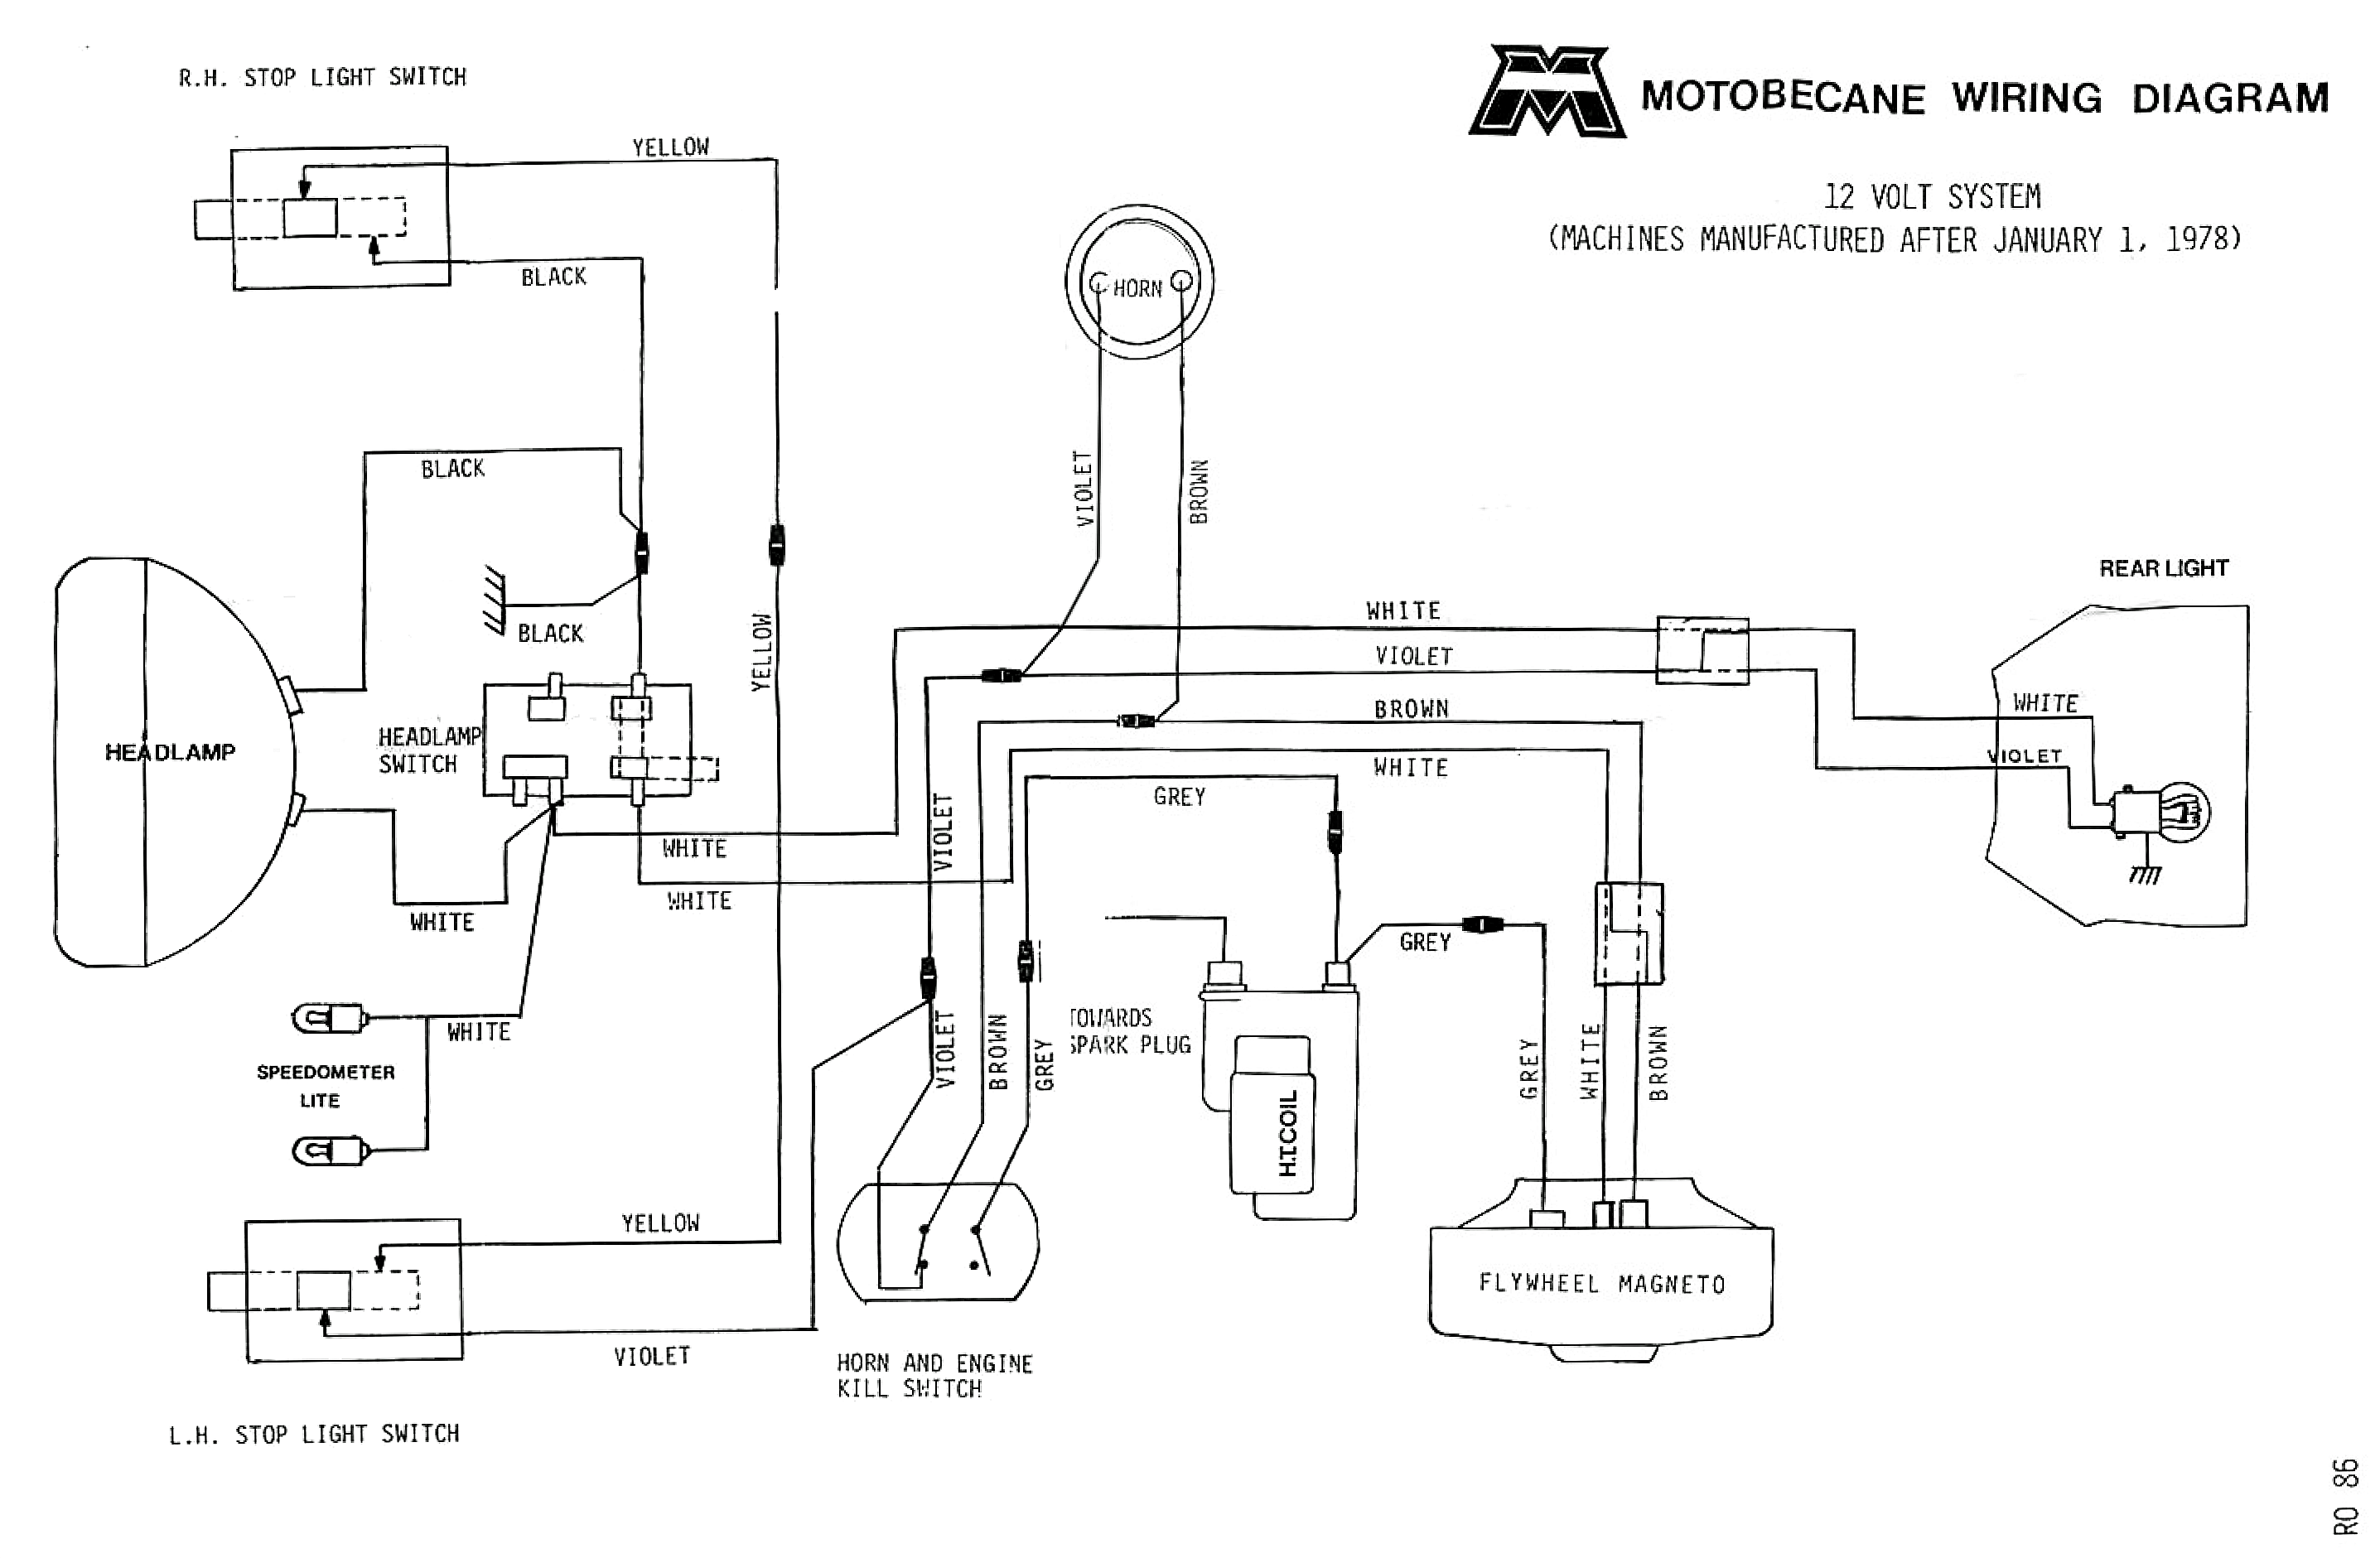 Motobecane12v_wiring_diagram motobecane wiring diagrams moped wiki 12 volt lighting wiring diagram at edmiracle.co